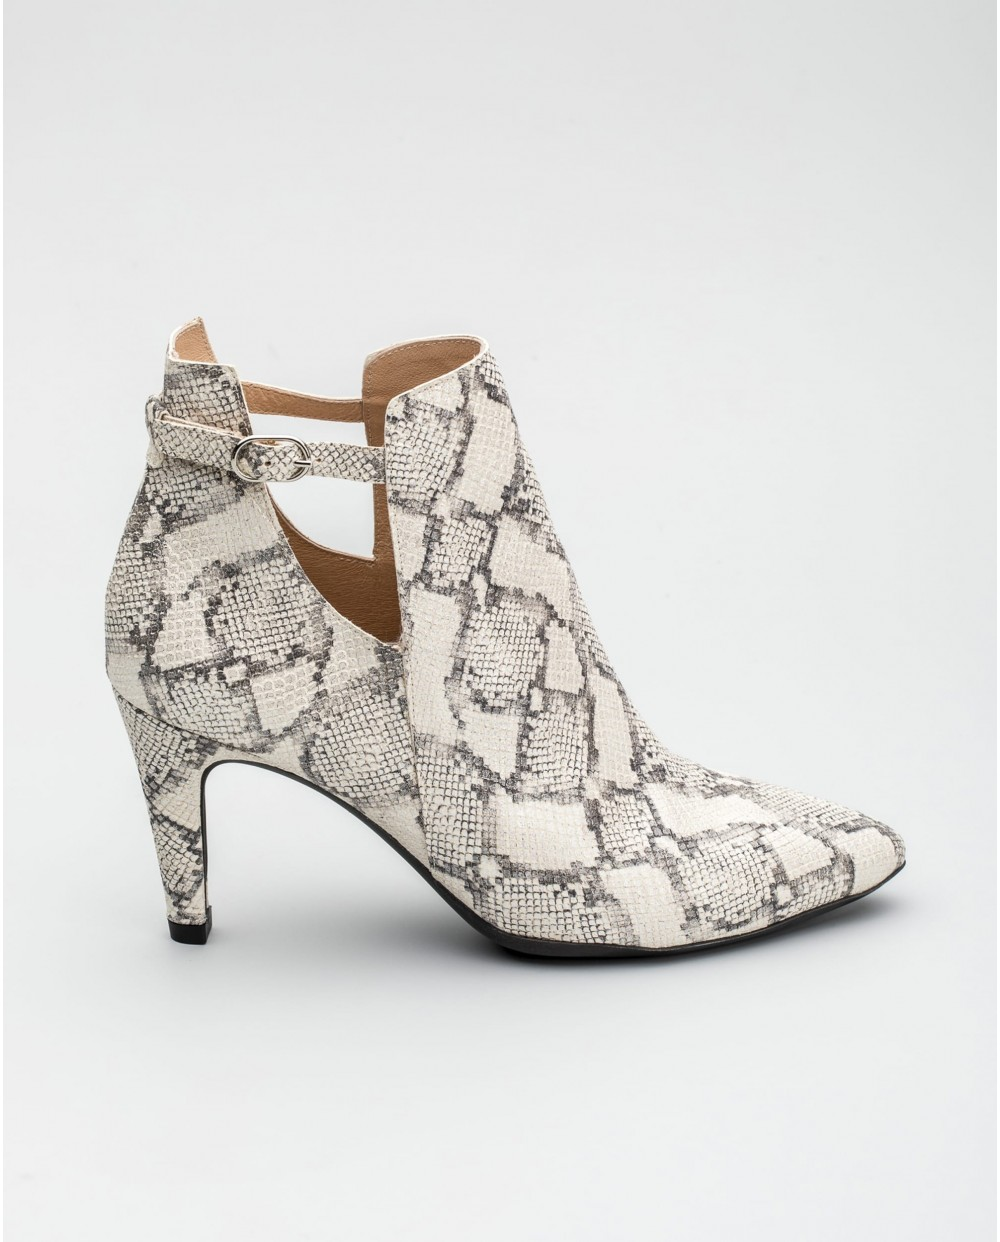 Wonders-Ankle Boots-Animal print high heeled ankle boot